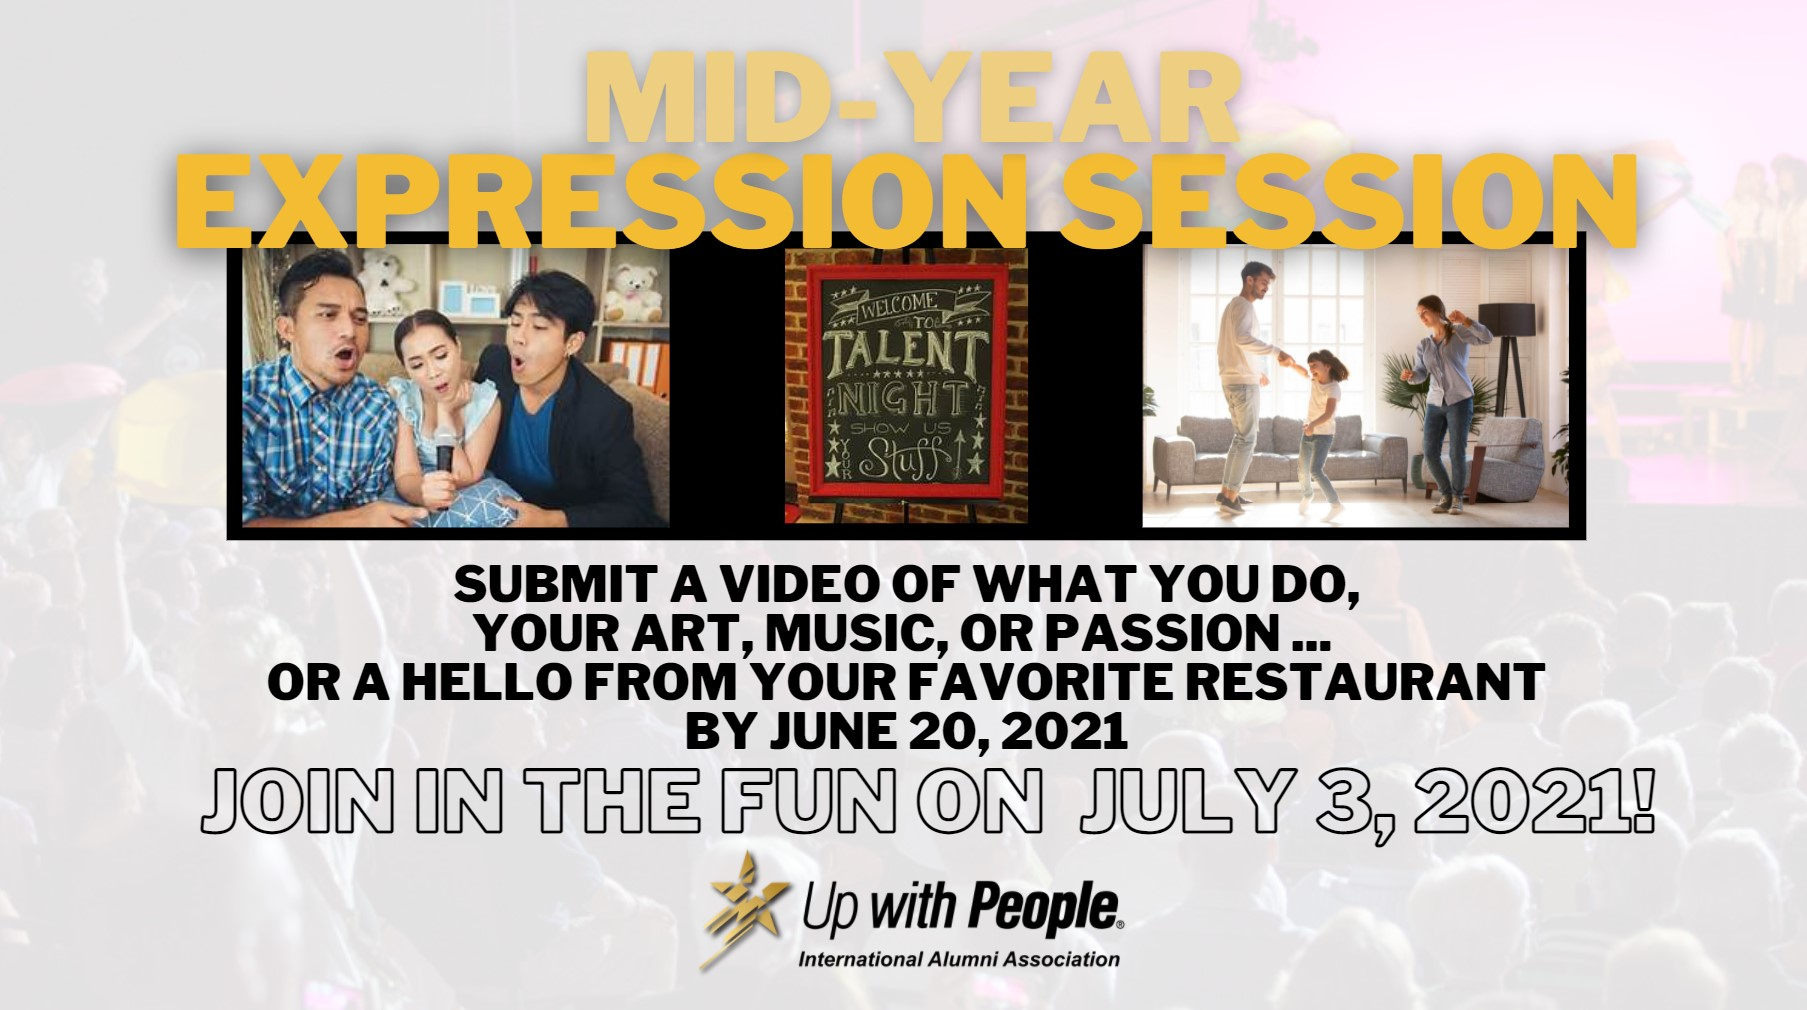 Mid Year Expression Session Submit a video of what you do, your art, music or passion... or a hello from your favorite restaurant by June 20, 2021. Join the fun on July 3, 2021